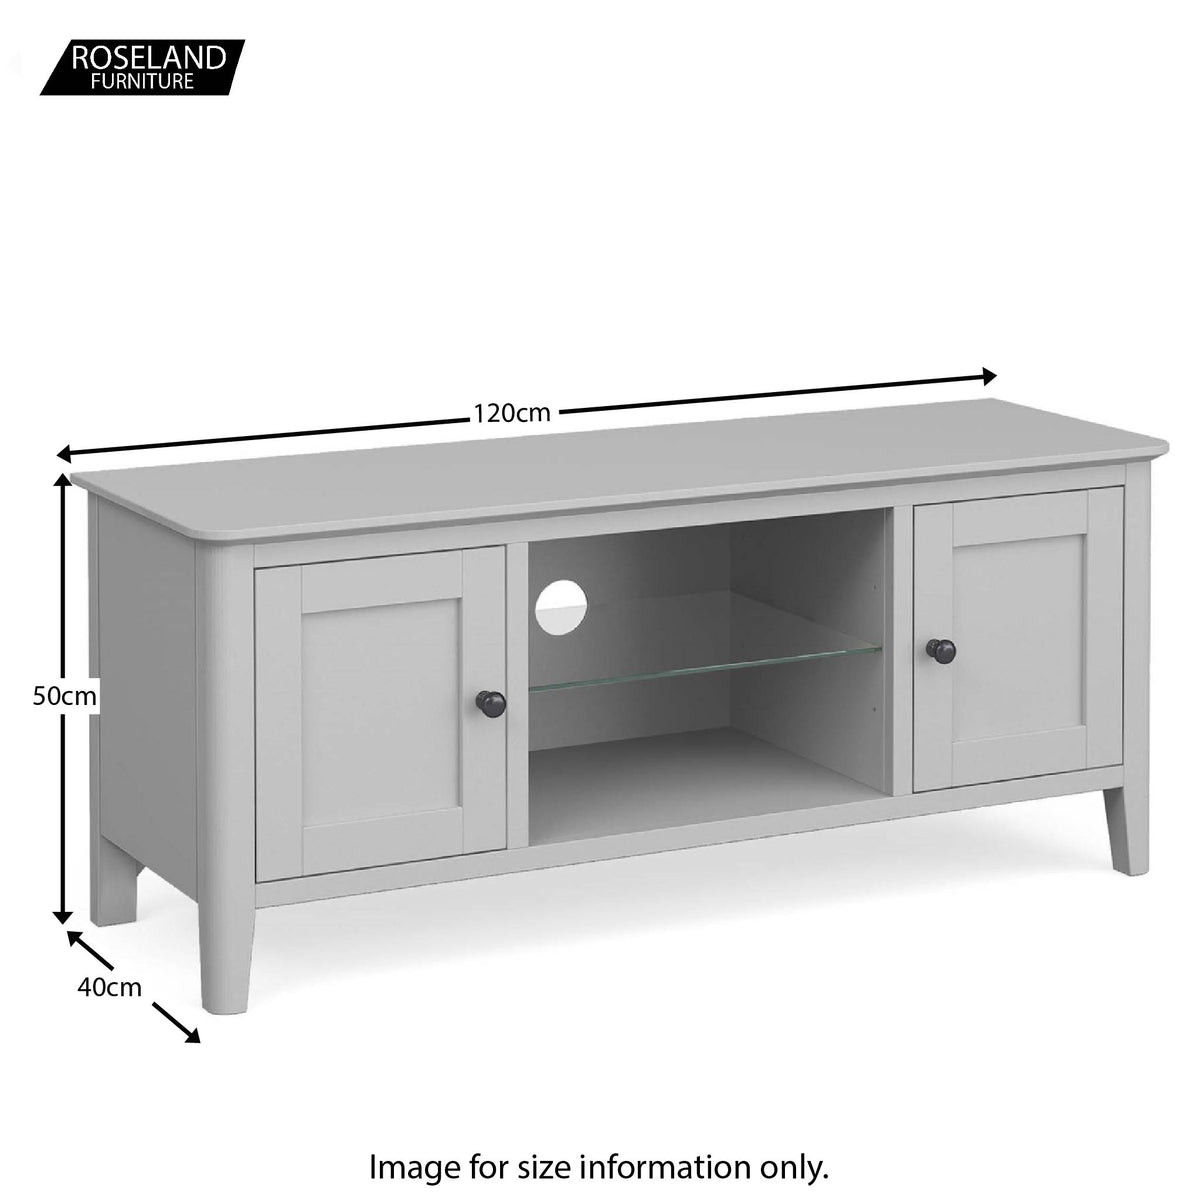 Elgin Grey 120cm large TV stand size guide